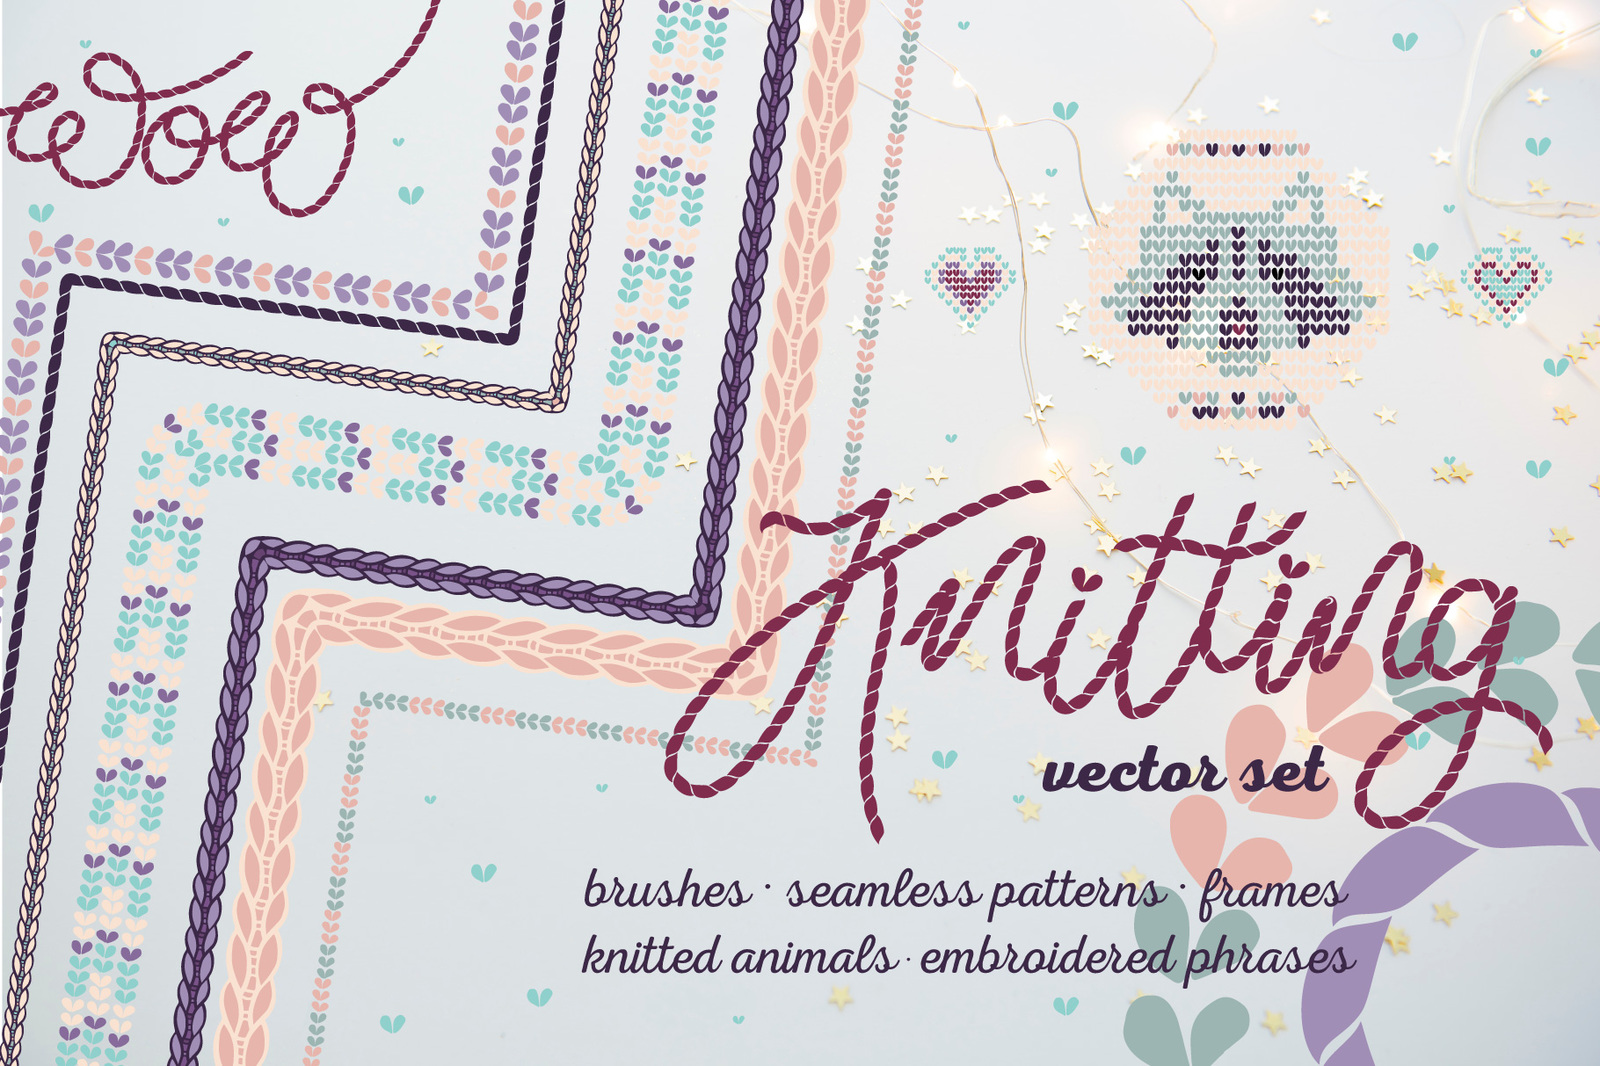 Knitted Elements, Brushes & Patterns